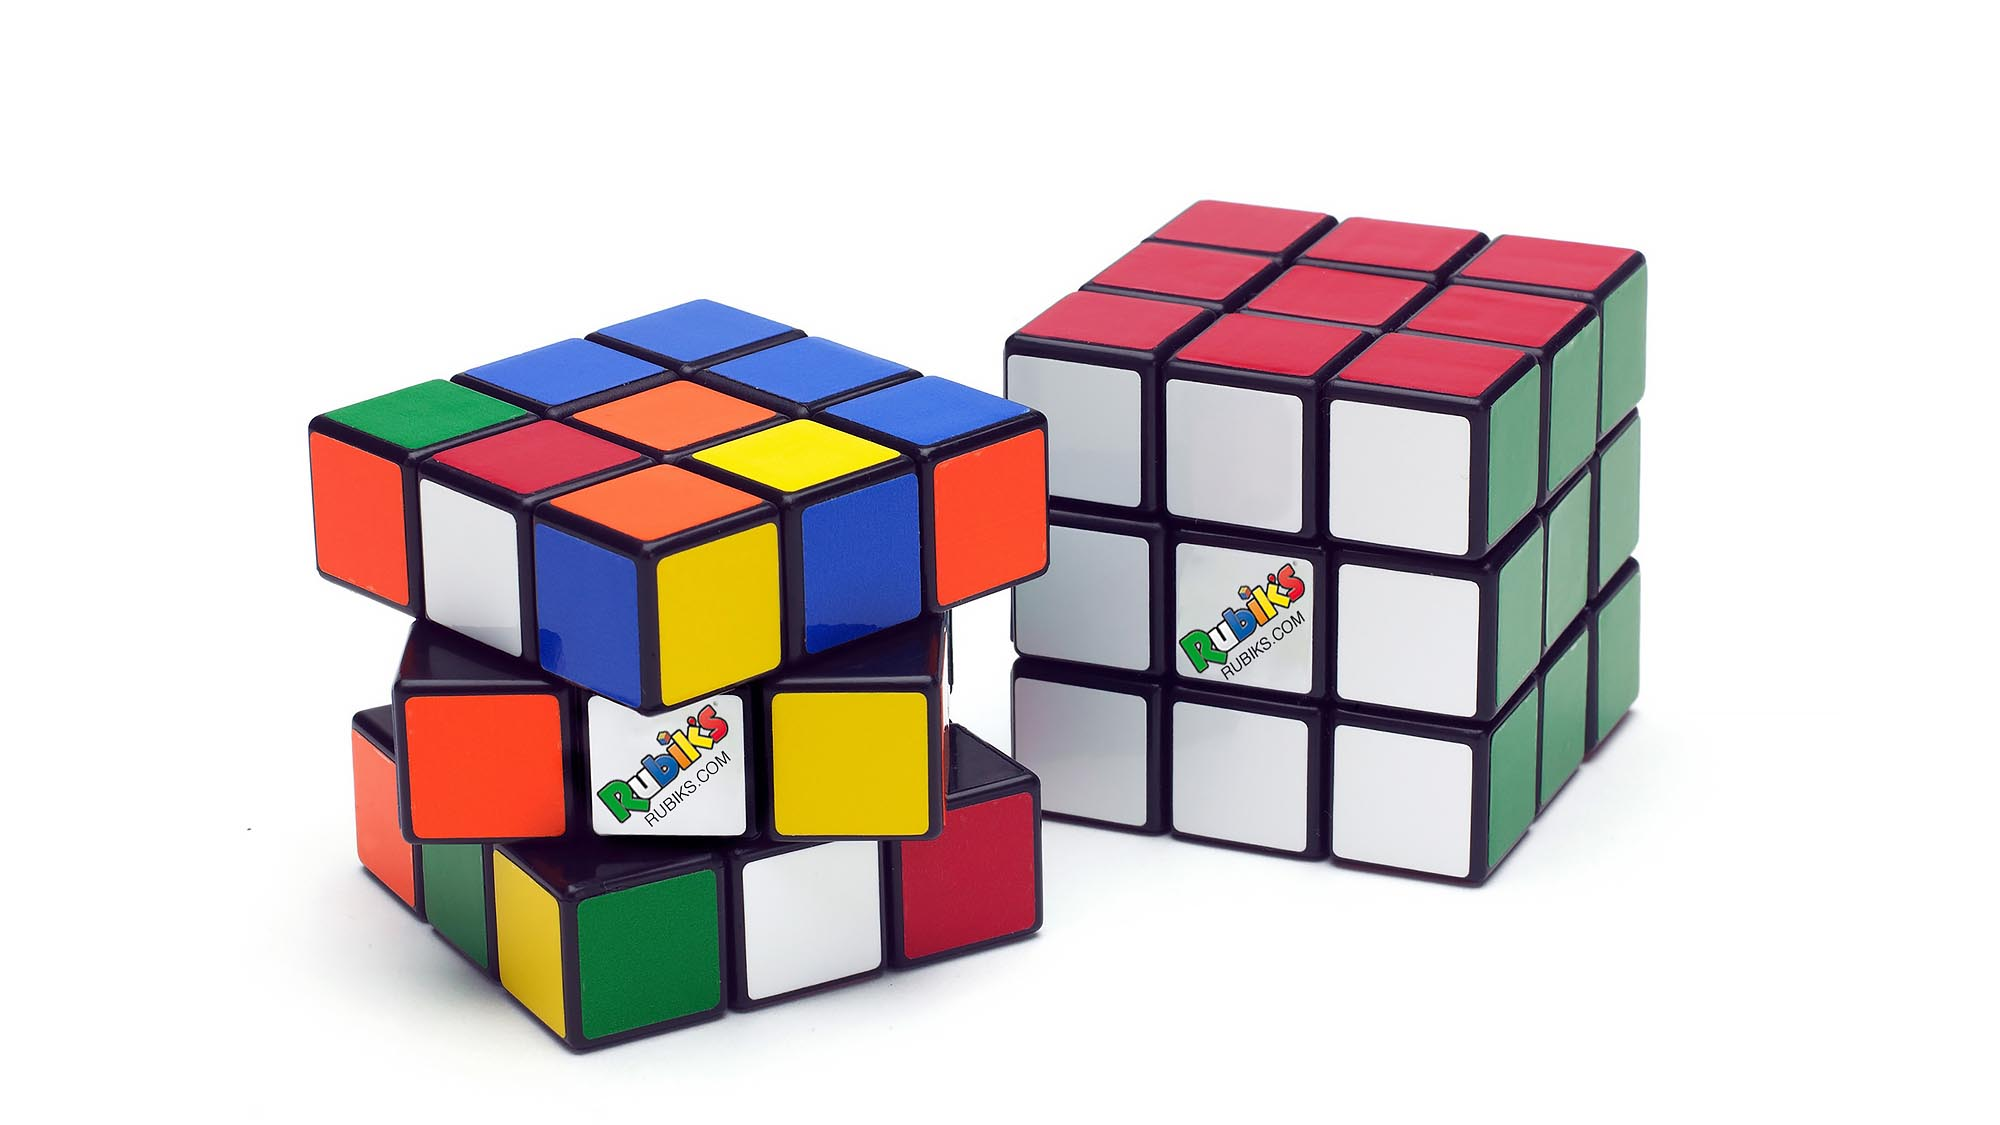 Ern Rubiks Colourful Little Cube Is The Worlds Best Selling Toy Shifting More Than 350 Million Units Since Its Heyday In 1980s With Over 43